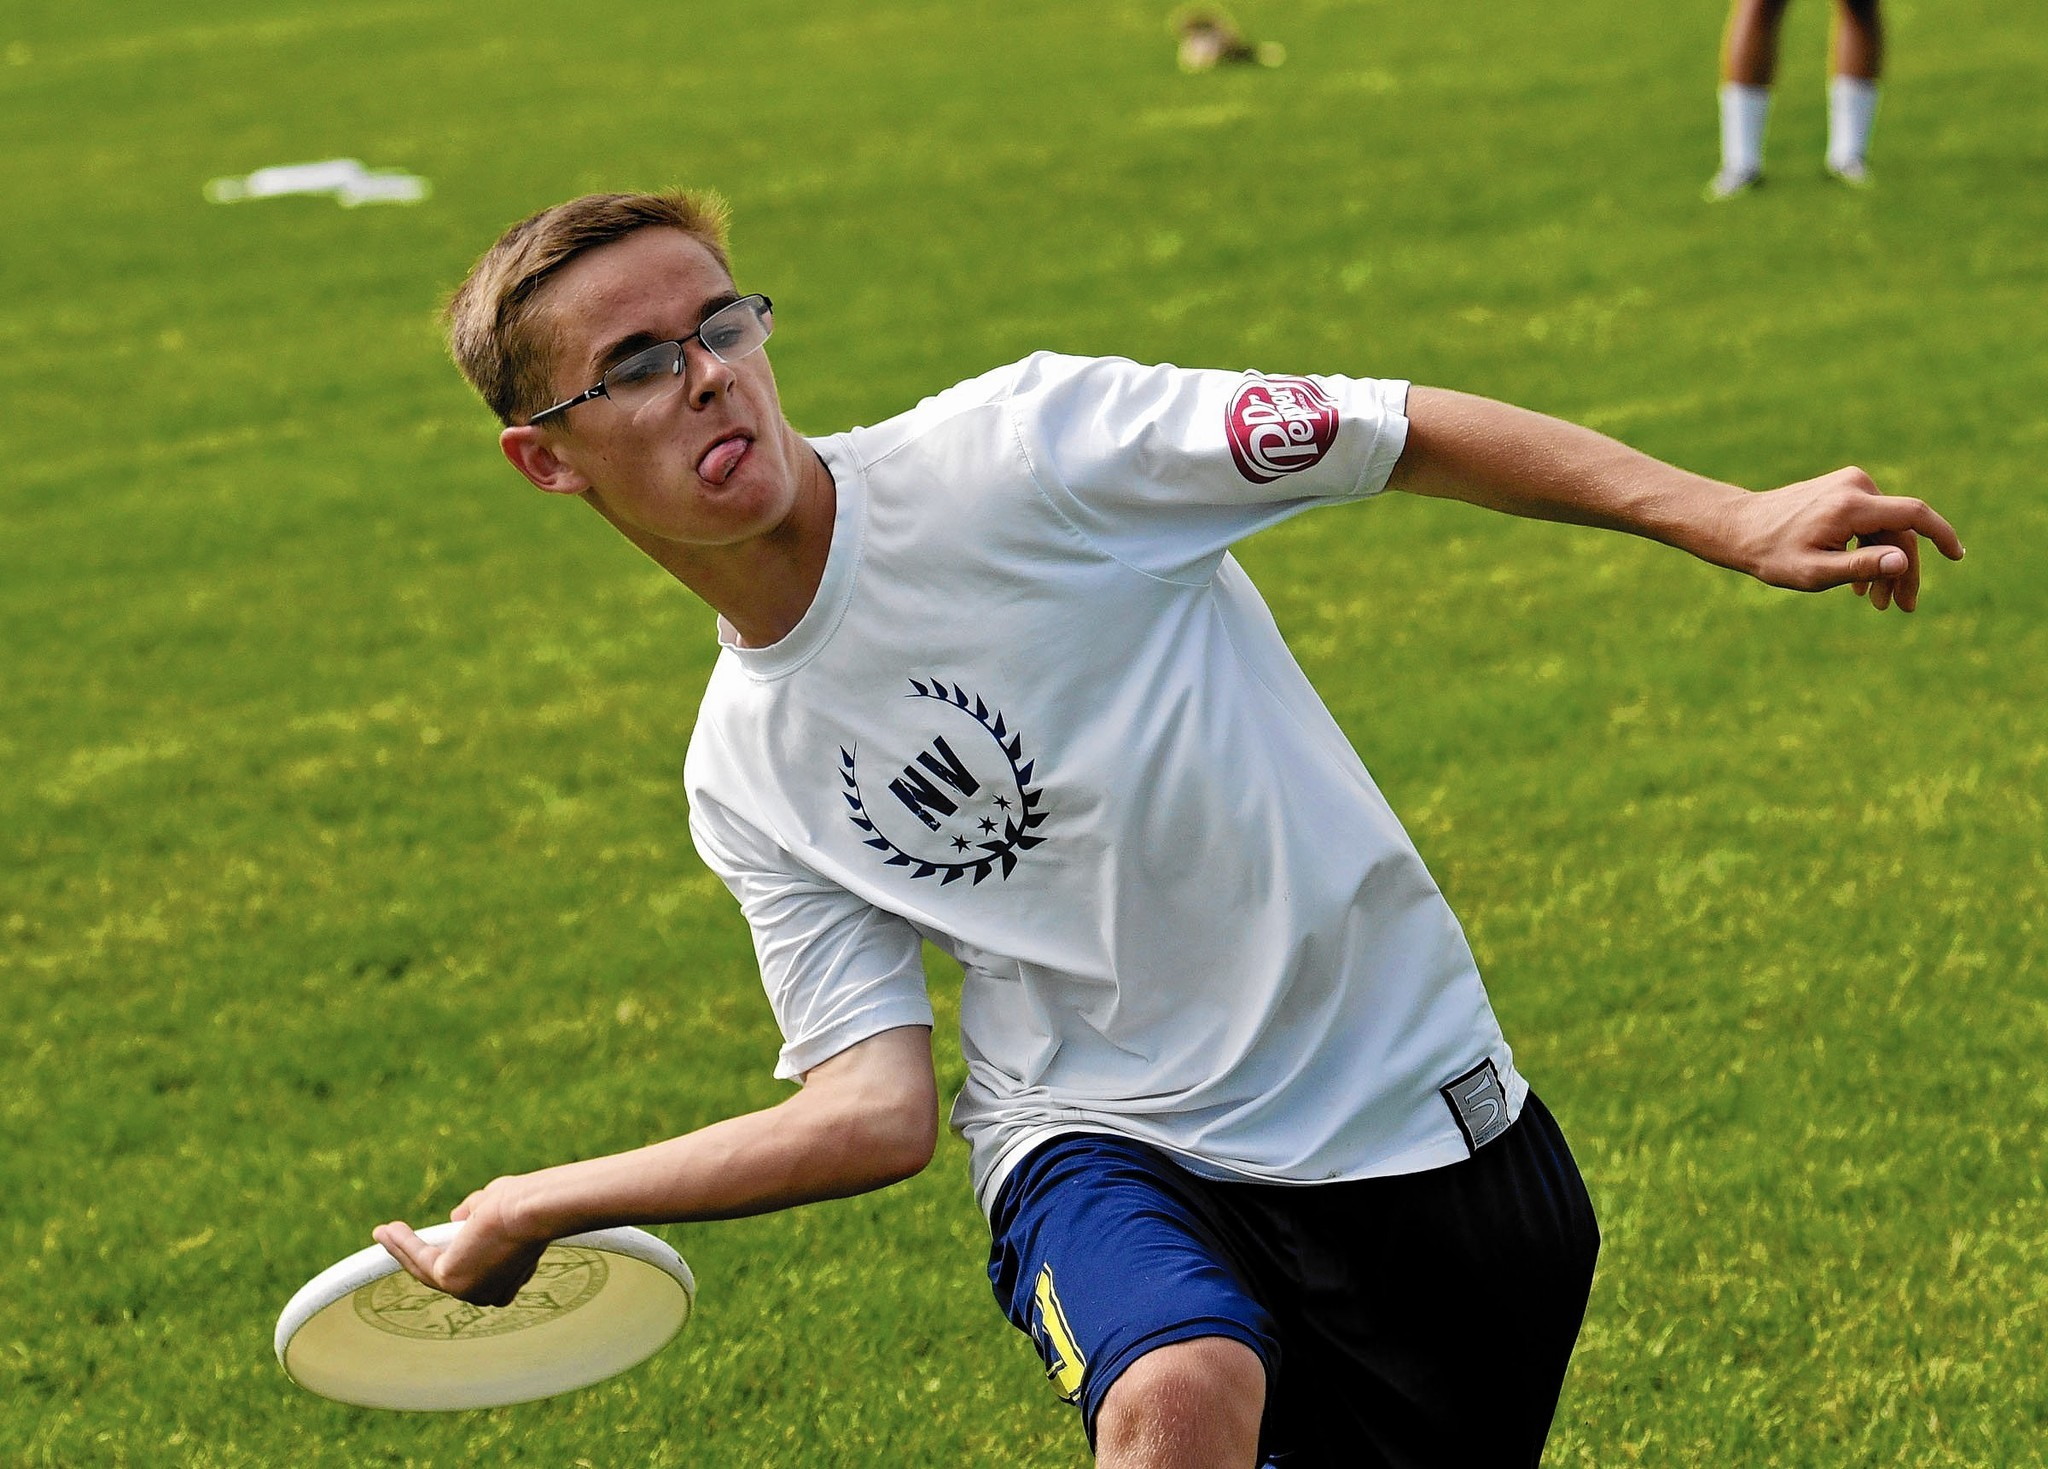 ultimate frisbee growing in